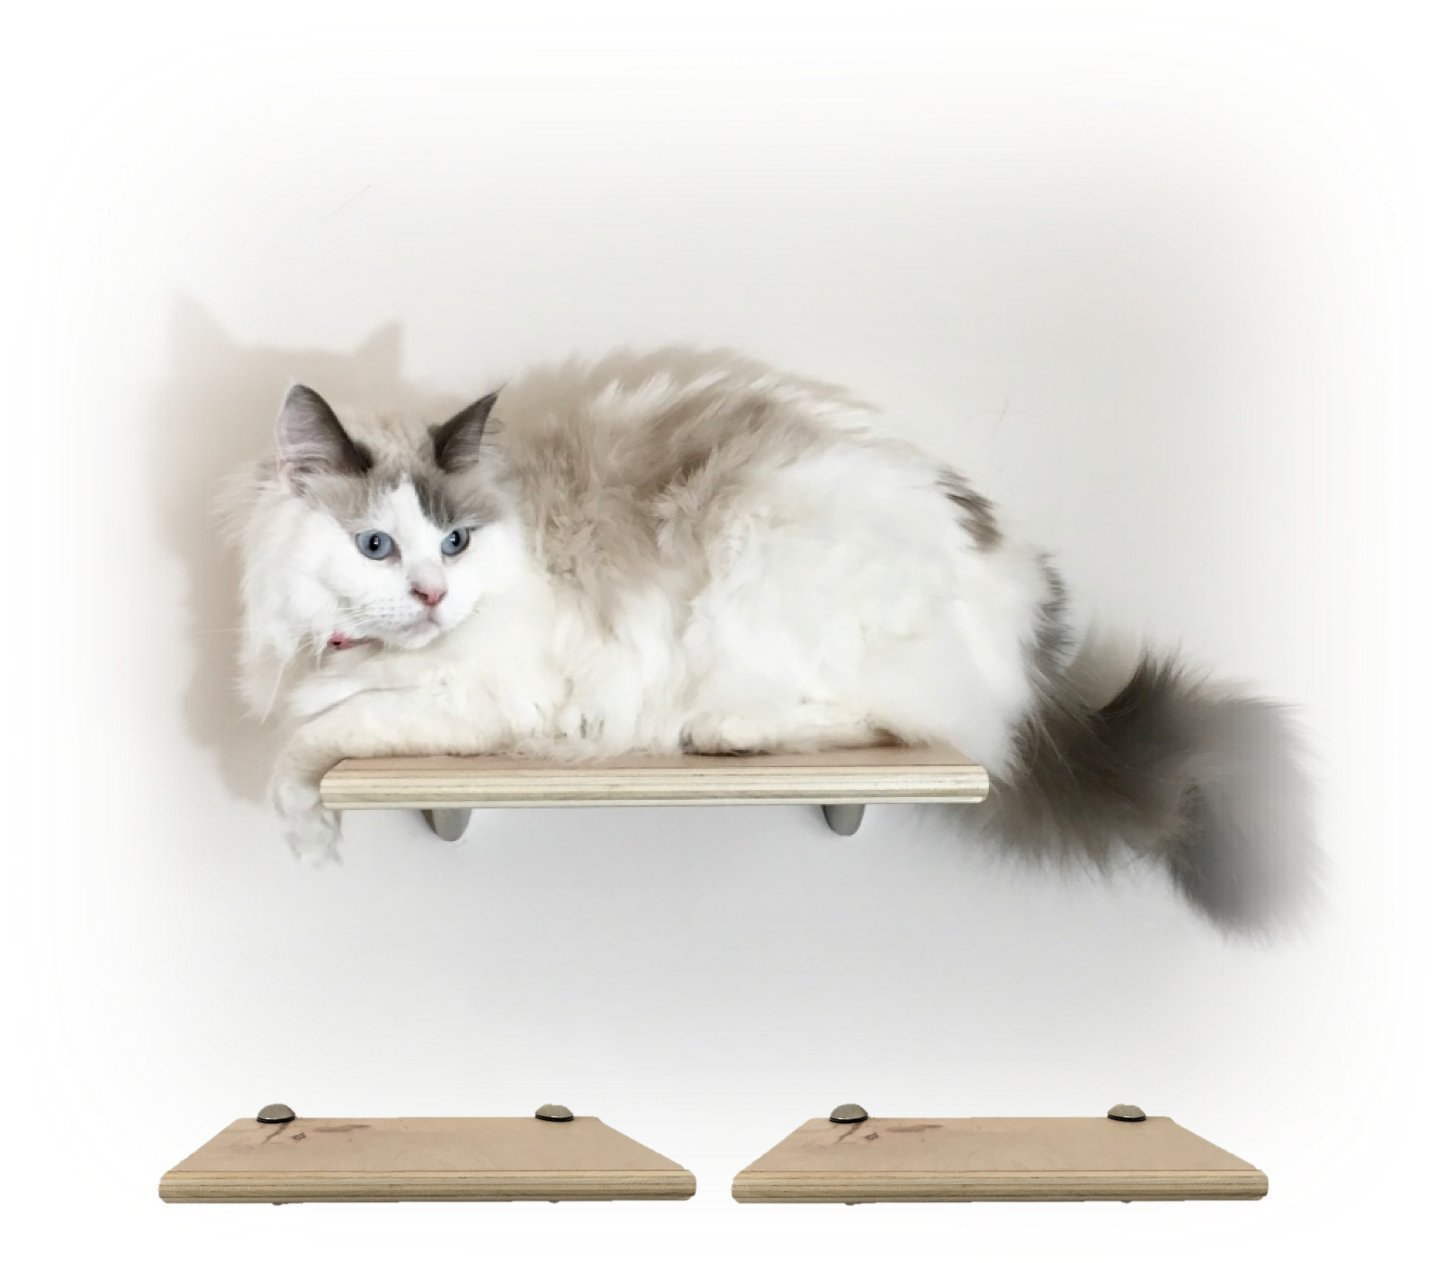 Set of 2 Choose wood /& bracket finish Contempo Floating Cat Shelf 12 by Purrfectly Catastic Handcrafted Wall Mounted space saving cat climbing activity tree steps shelves furniture